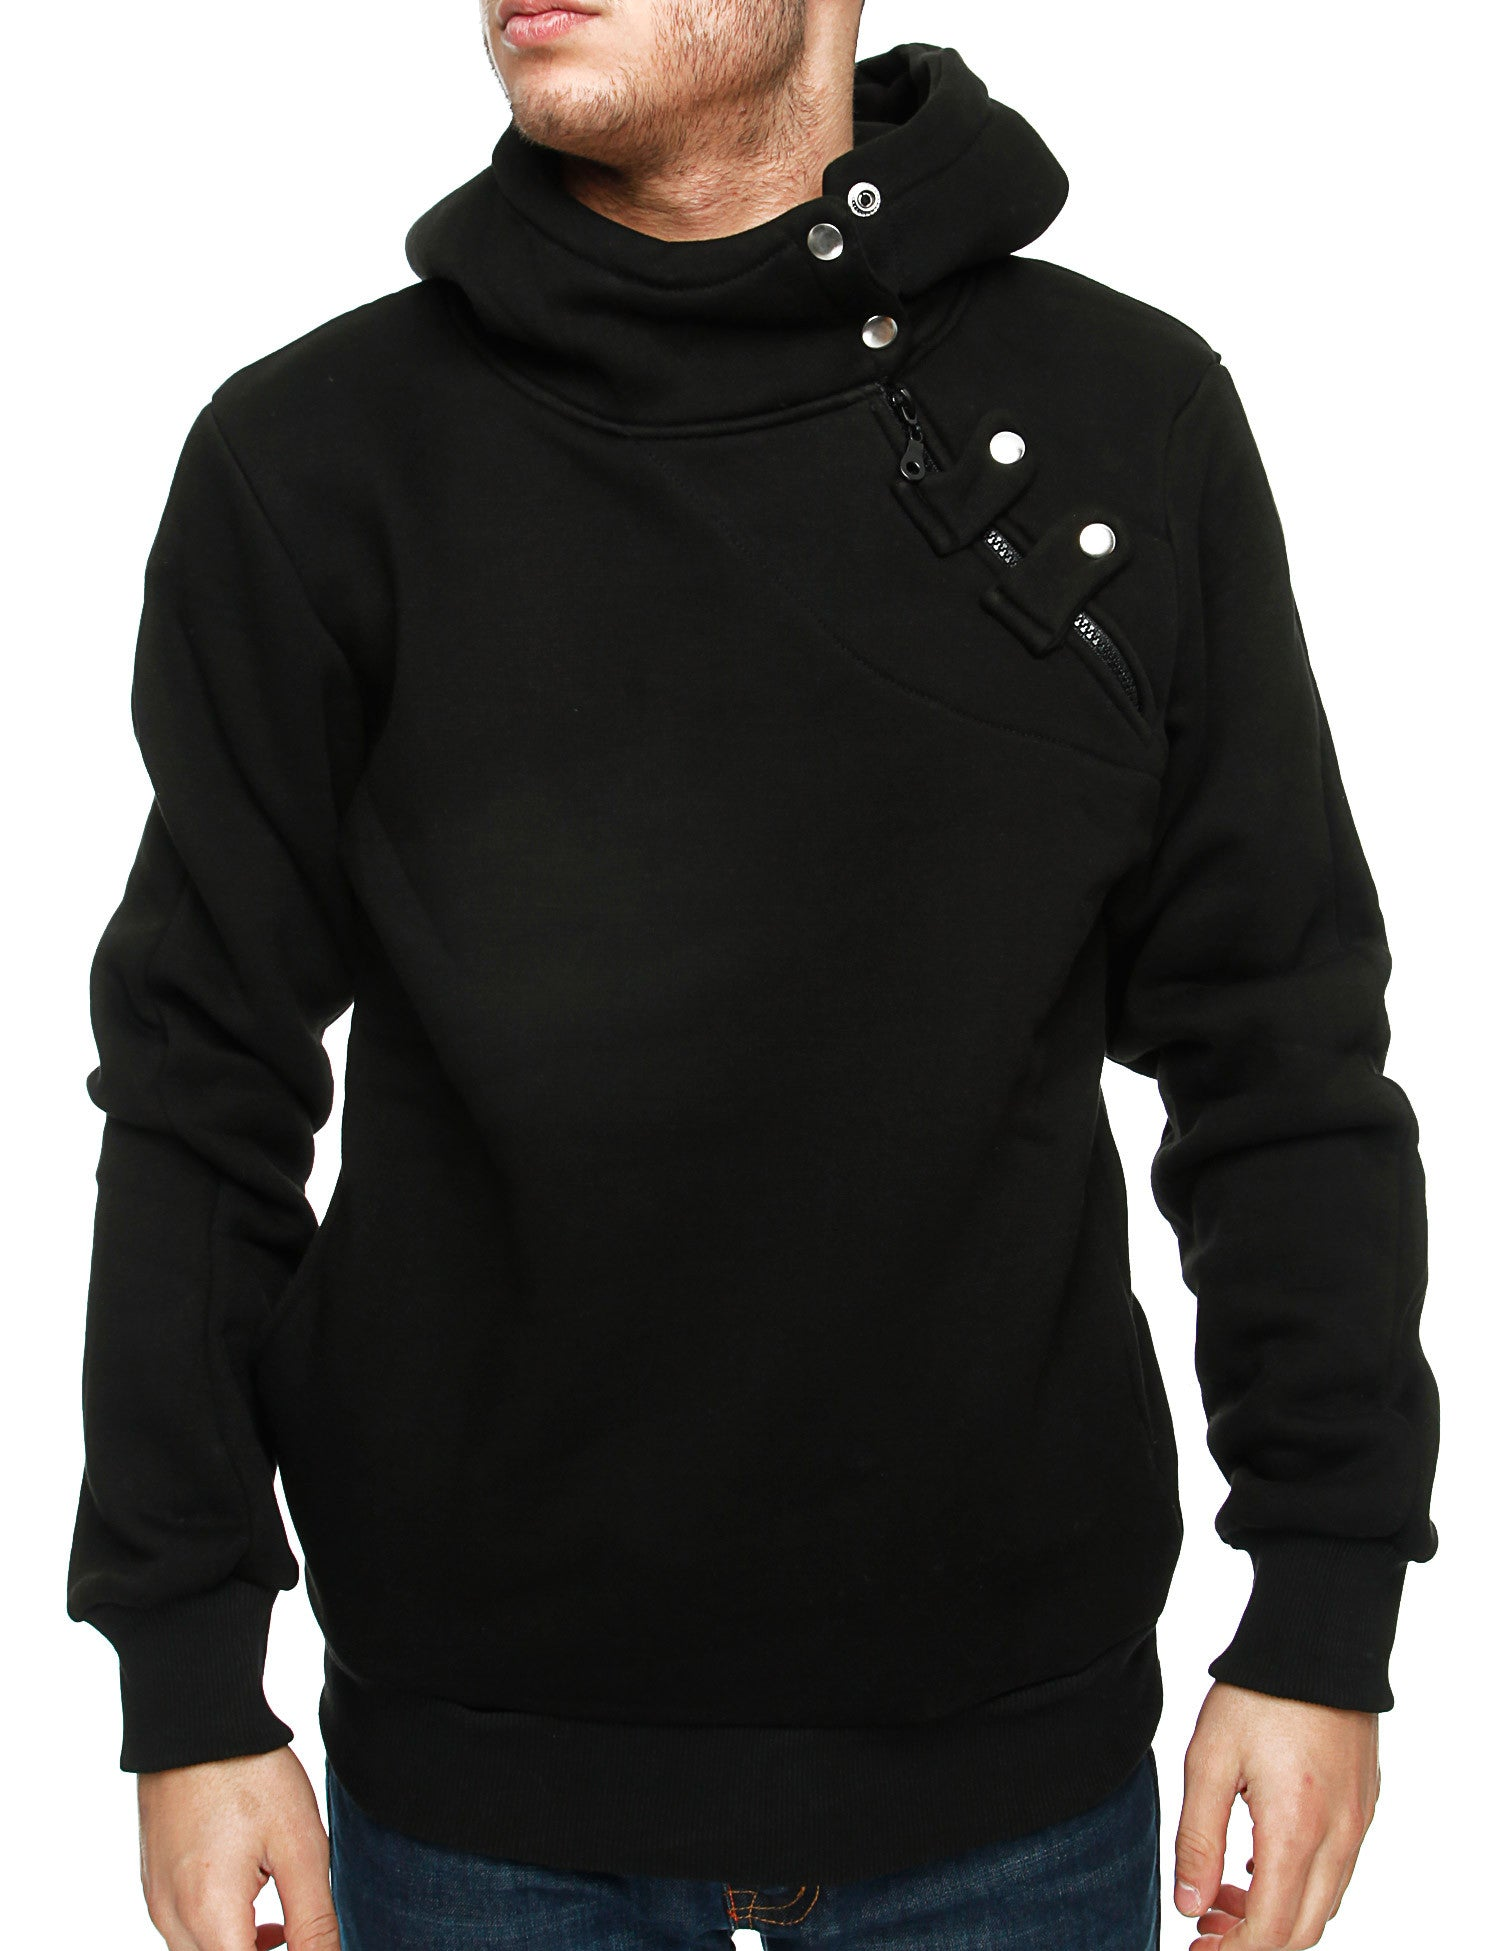 Behype S135 Hoodie Heather Black